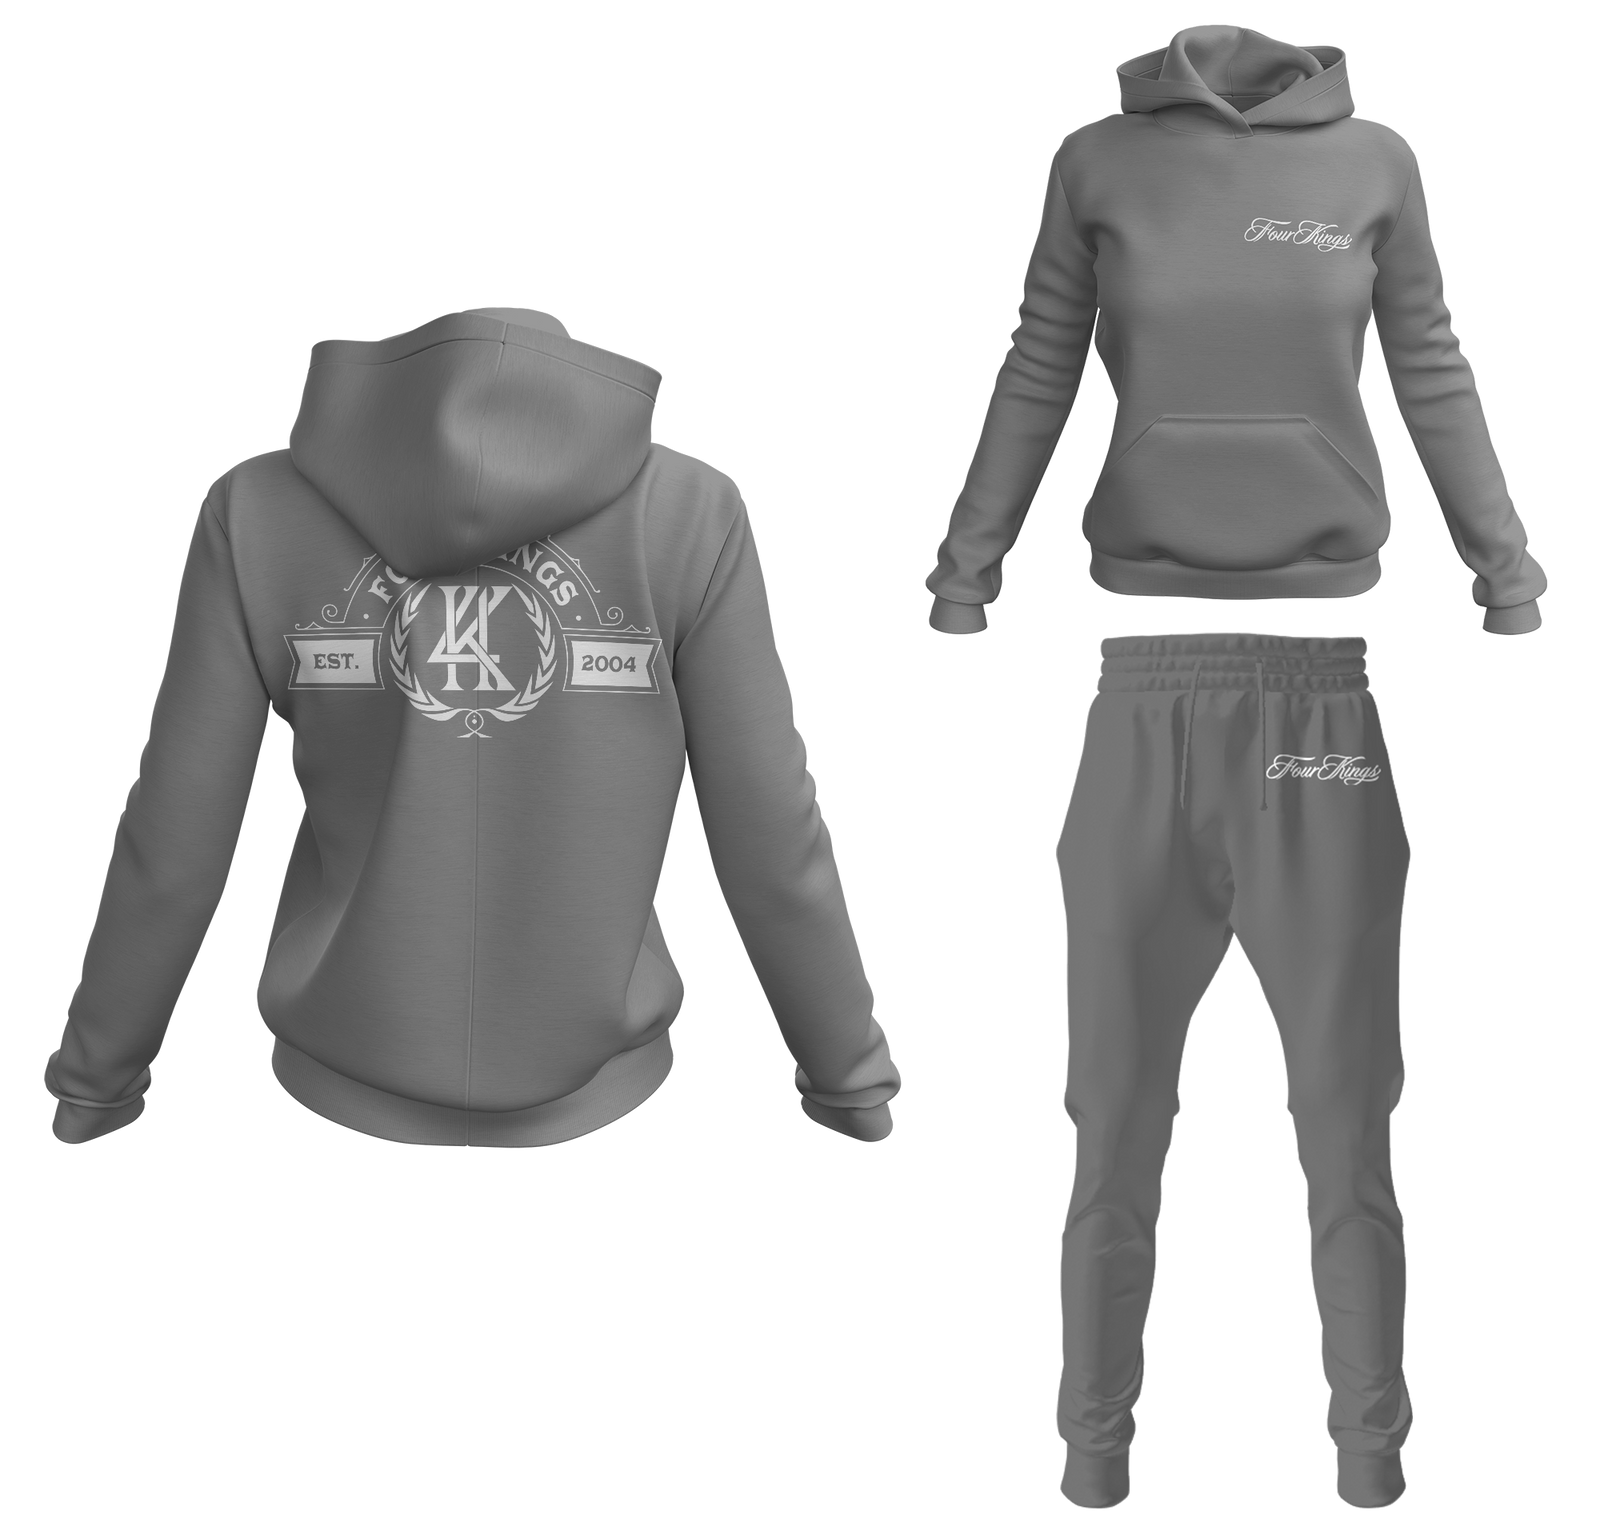 Four Kings Women's V1 Pullover Sweatsuit (Gray)